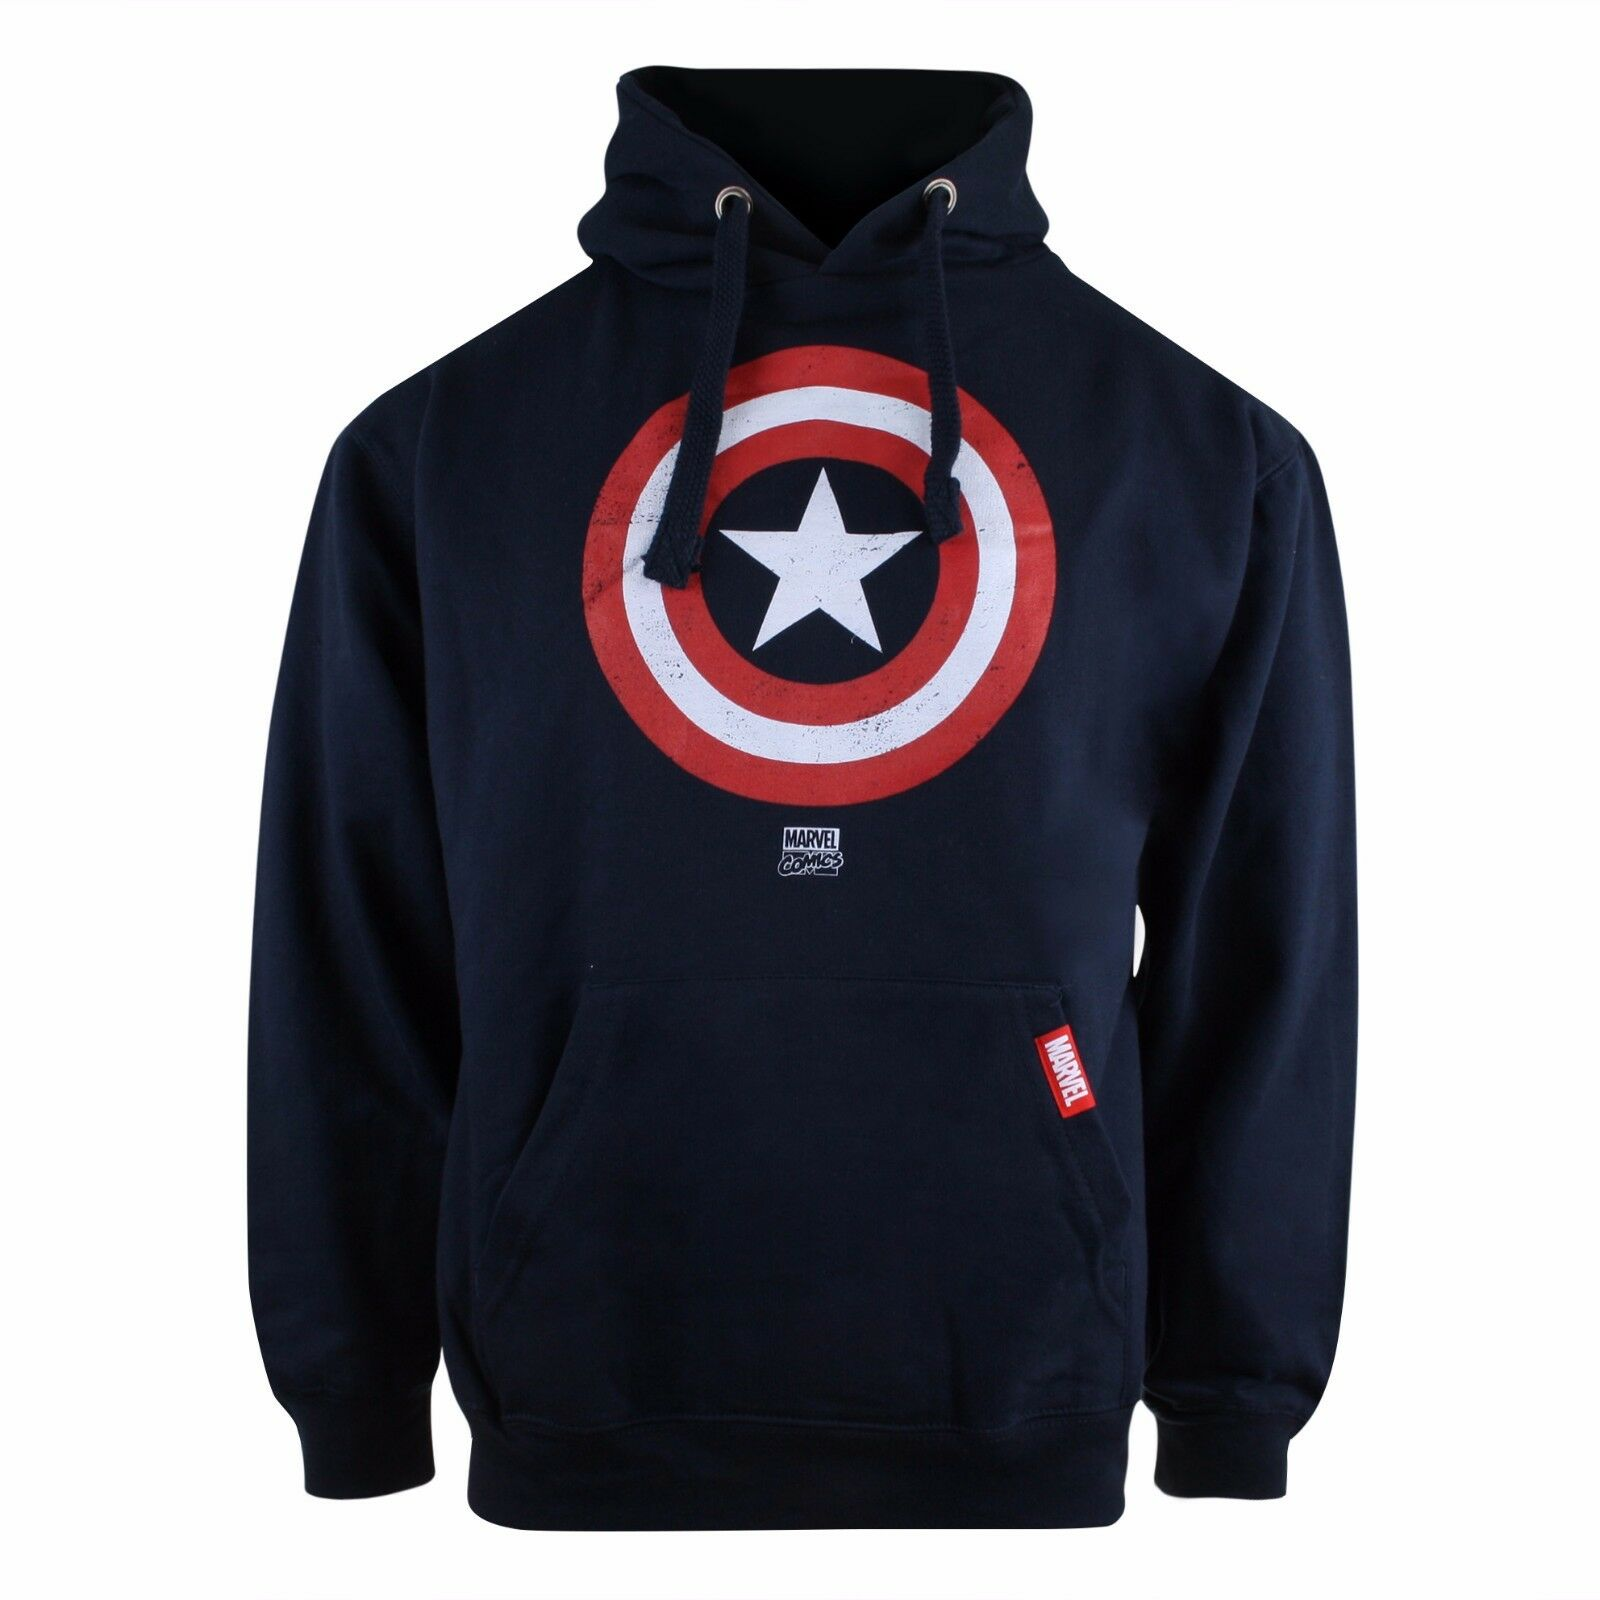 details about mens marvel captain america shield logo hoodie hoody - navy  blue - sizes s-xxl